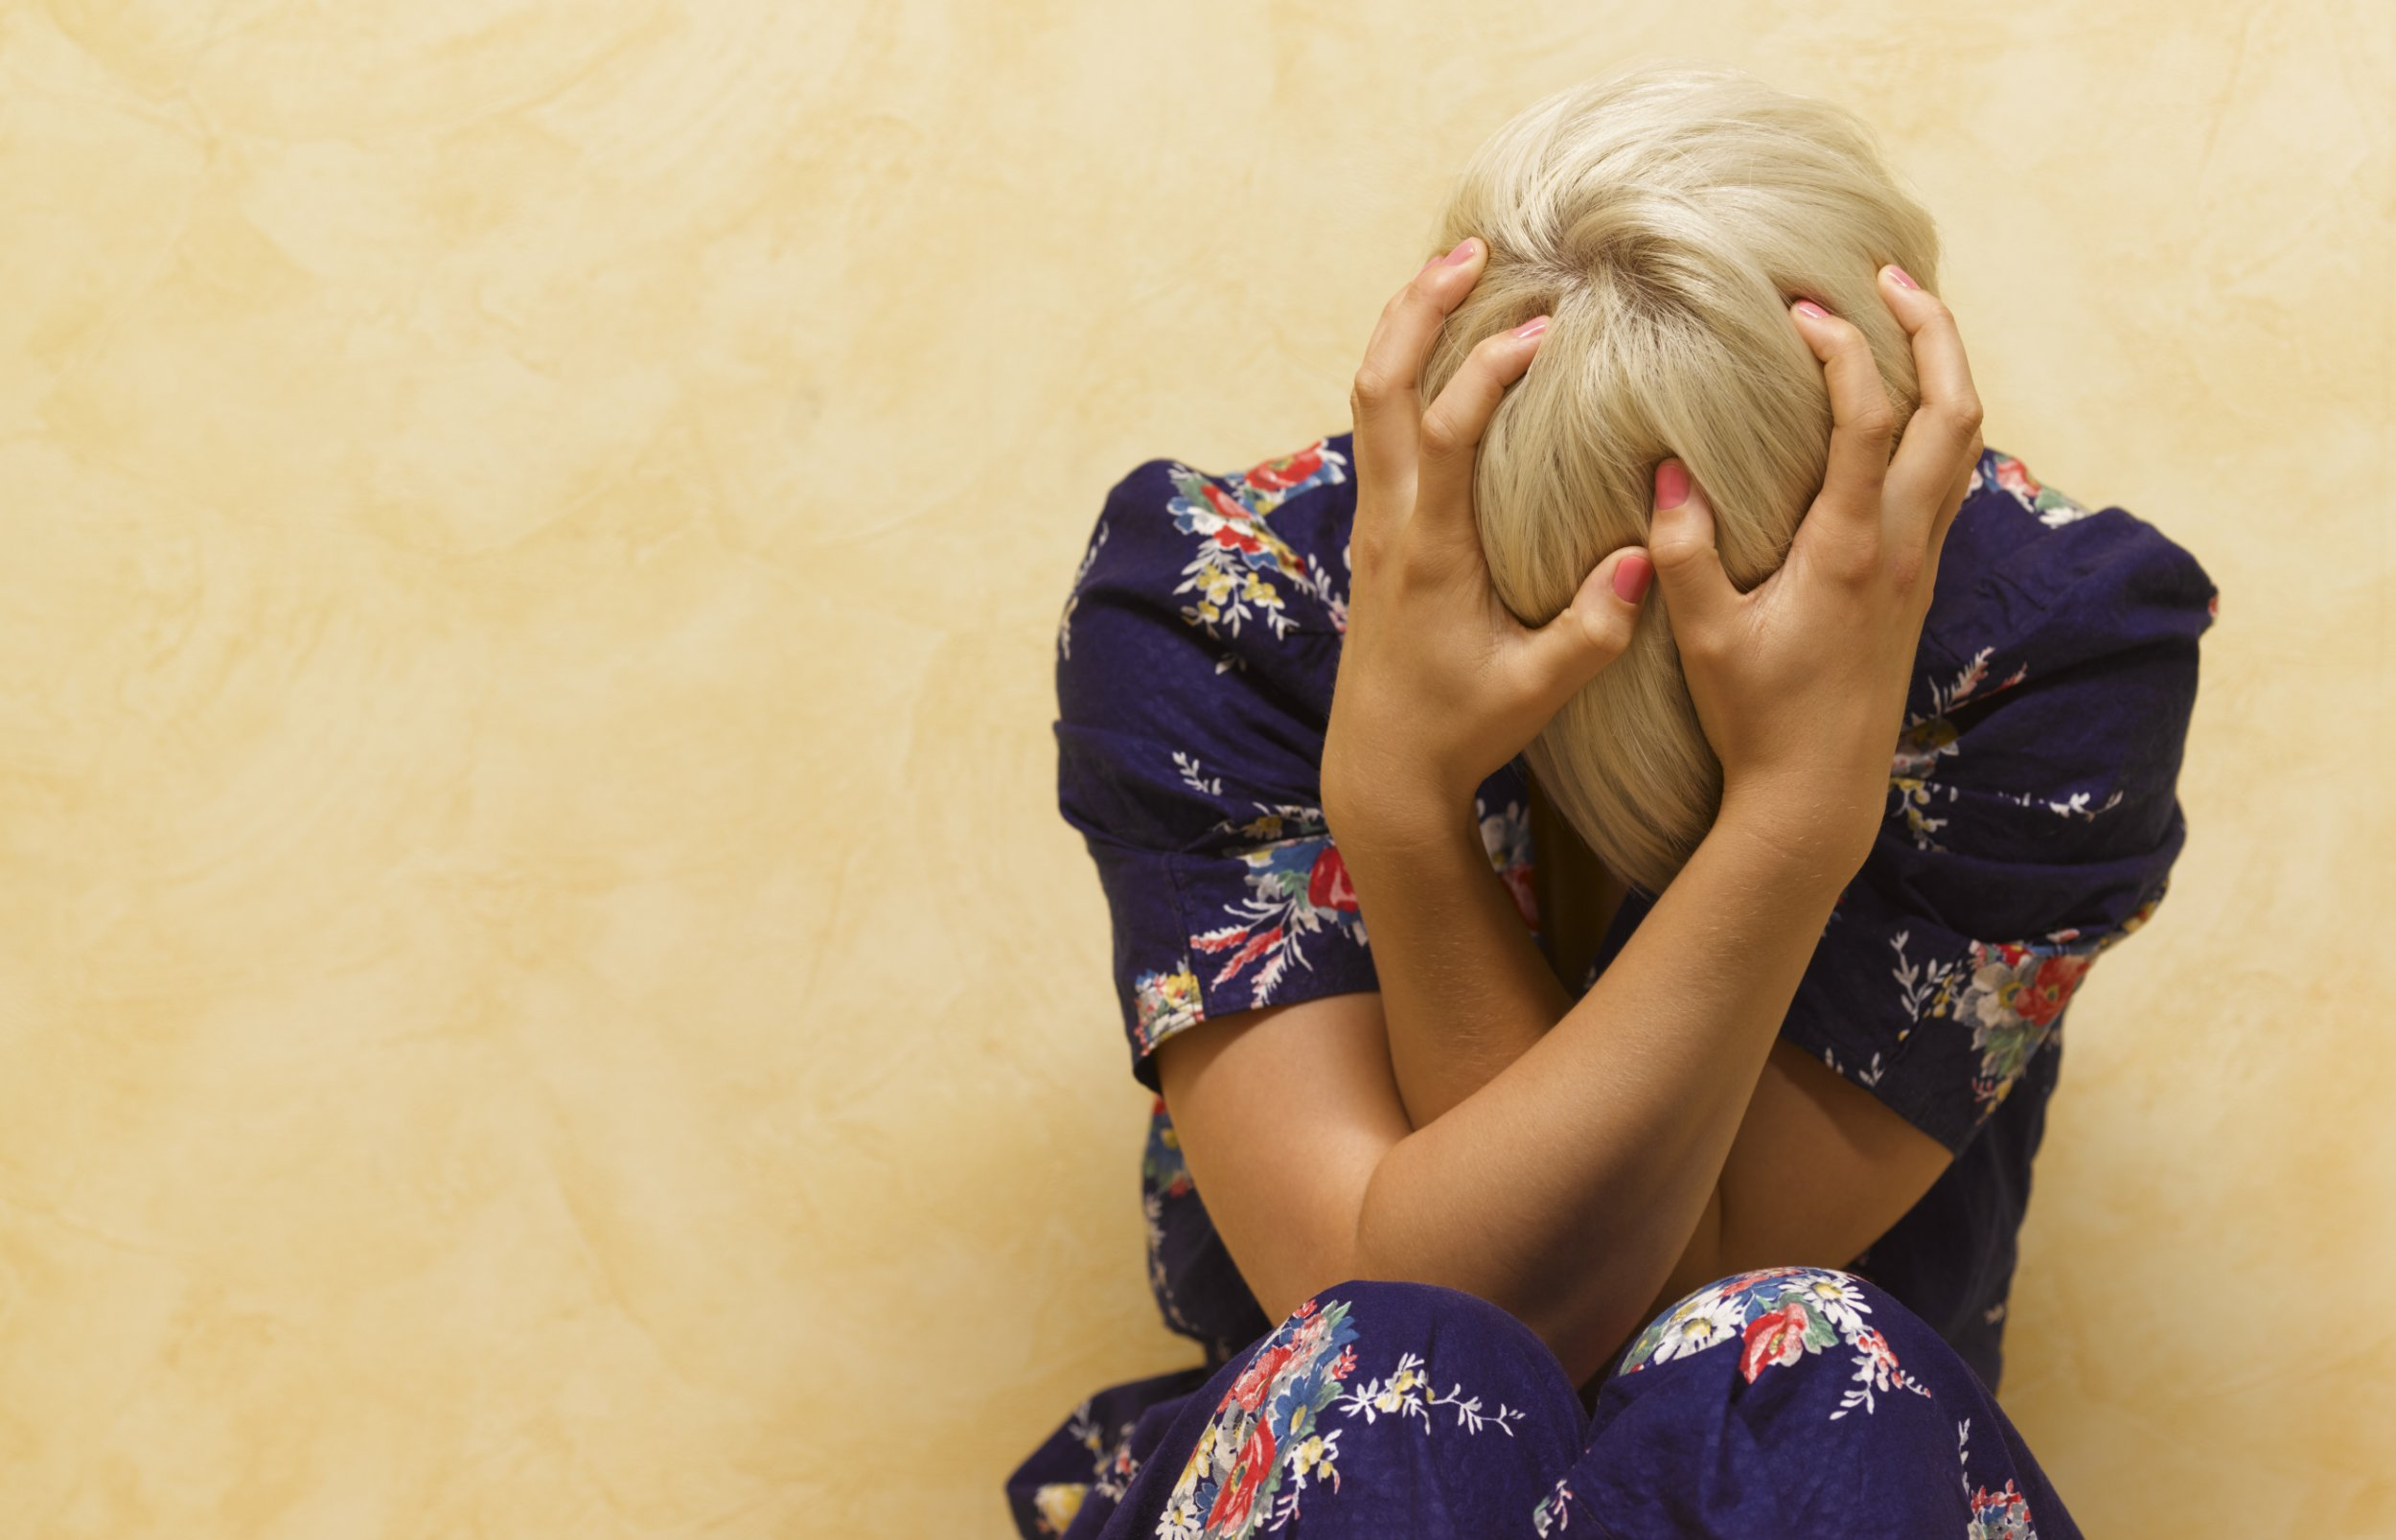 Deaths among young mental health patients 'under-reported'